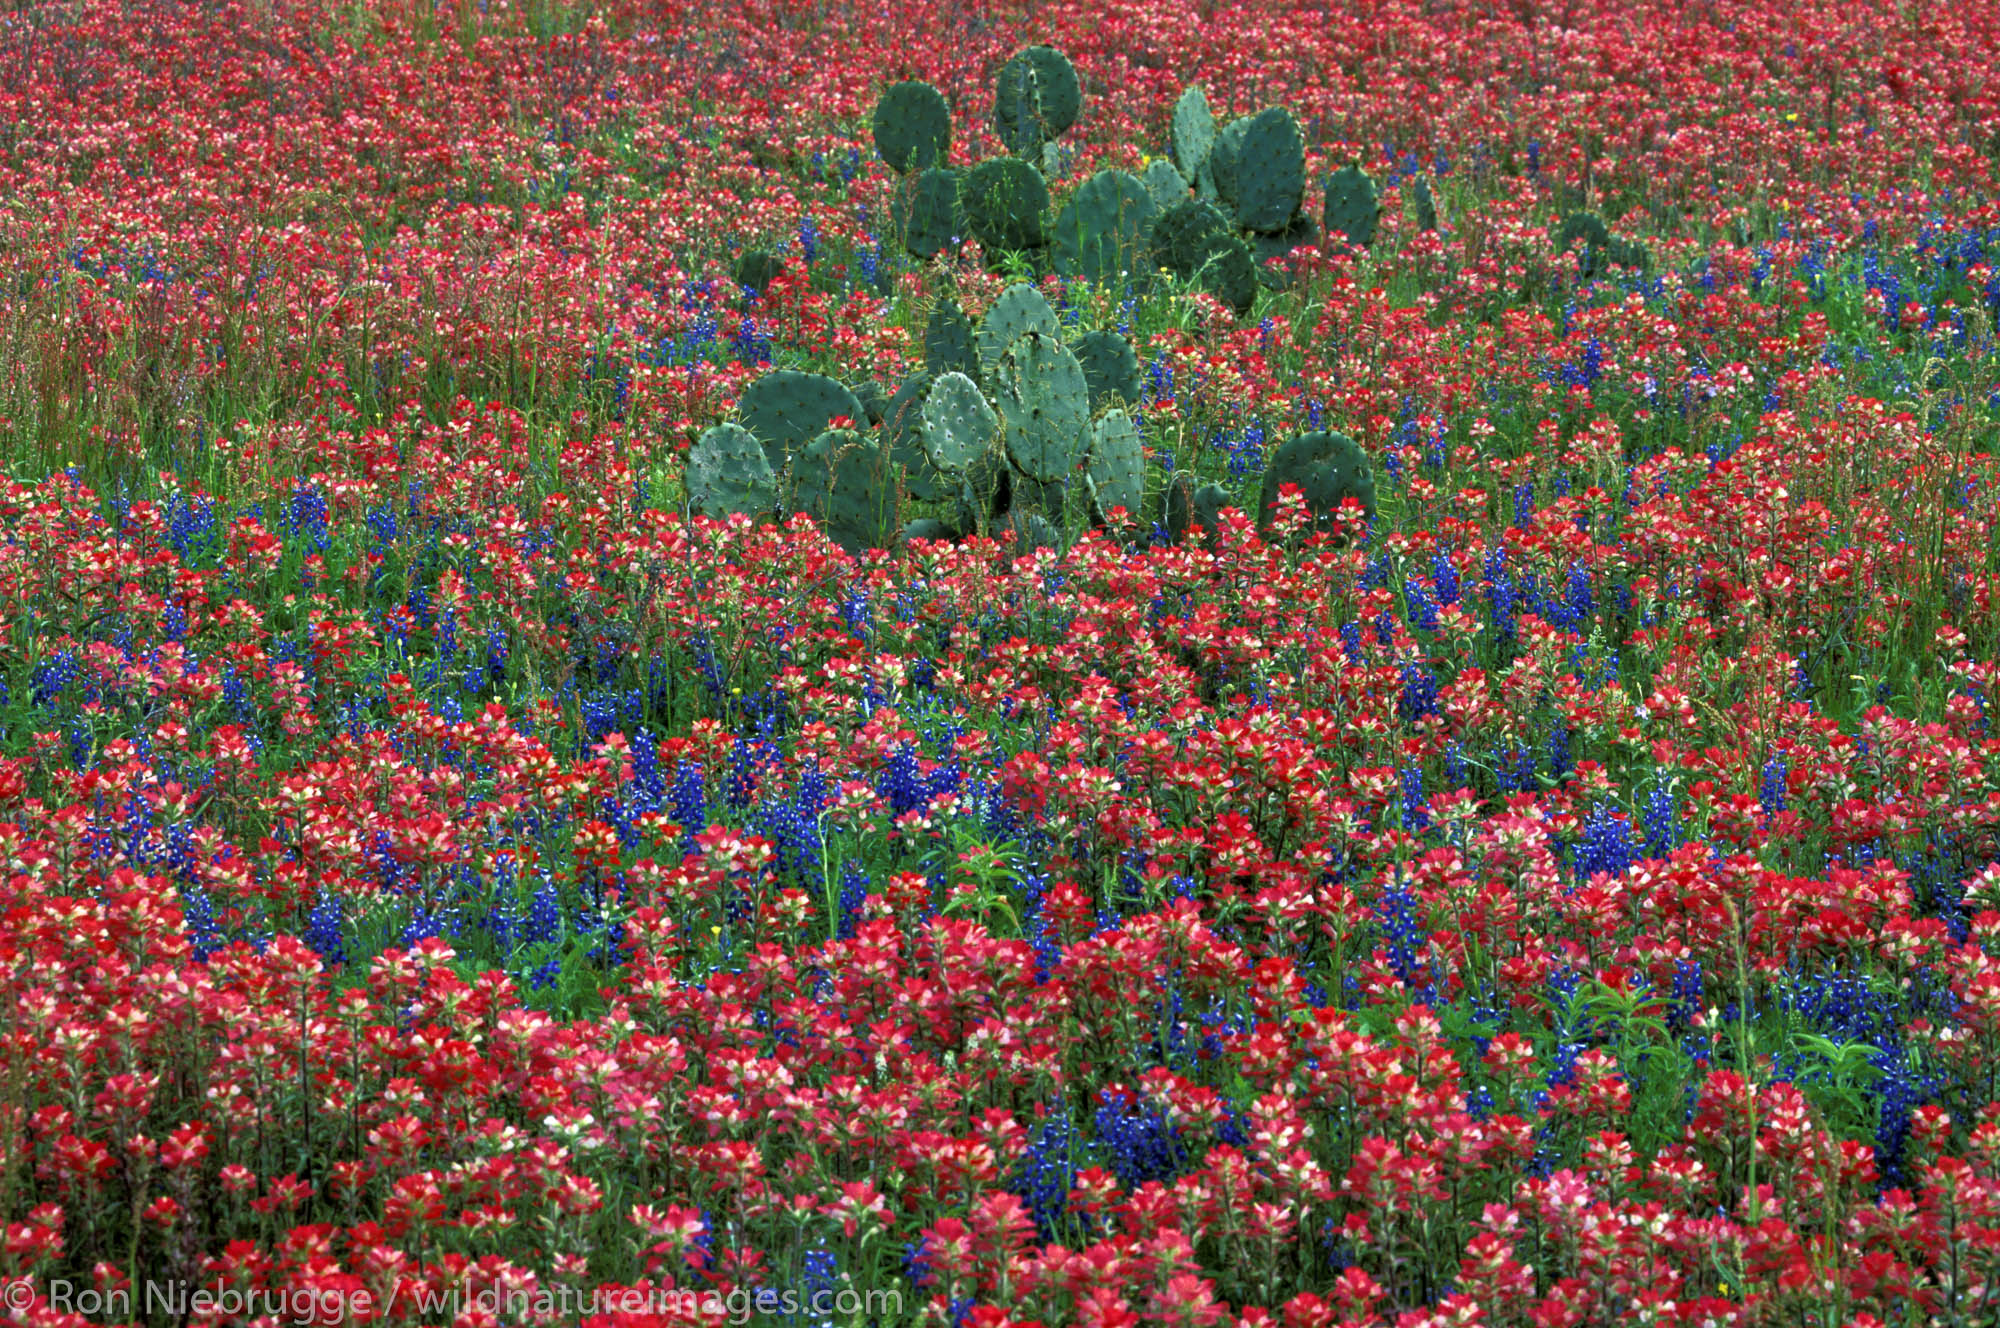 Cactus in Field of Indian Paintbrush and Bluebonnet. near San Antonio Texas.